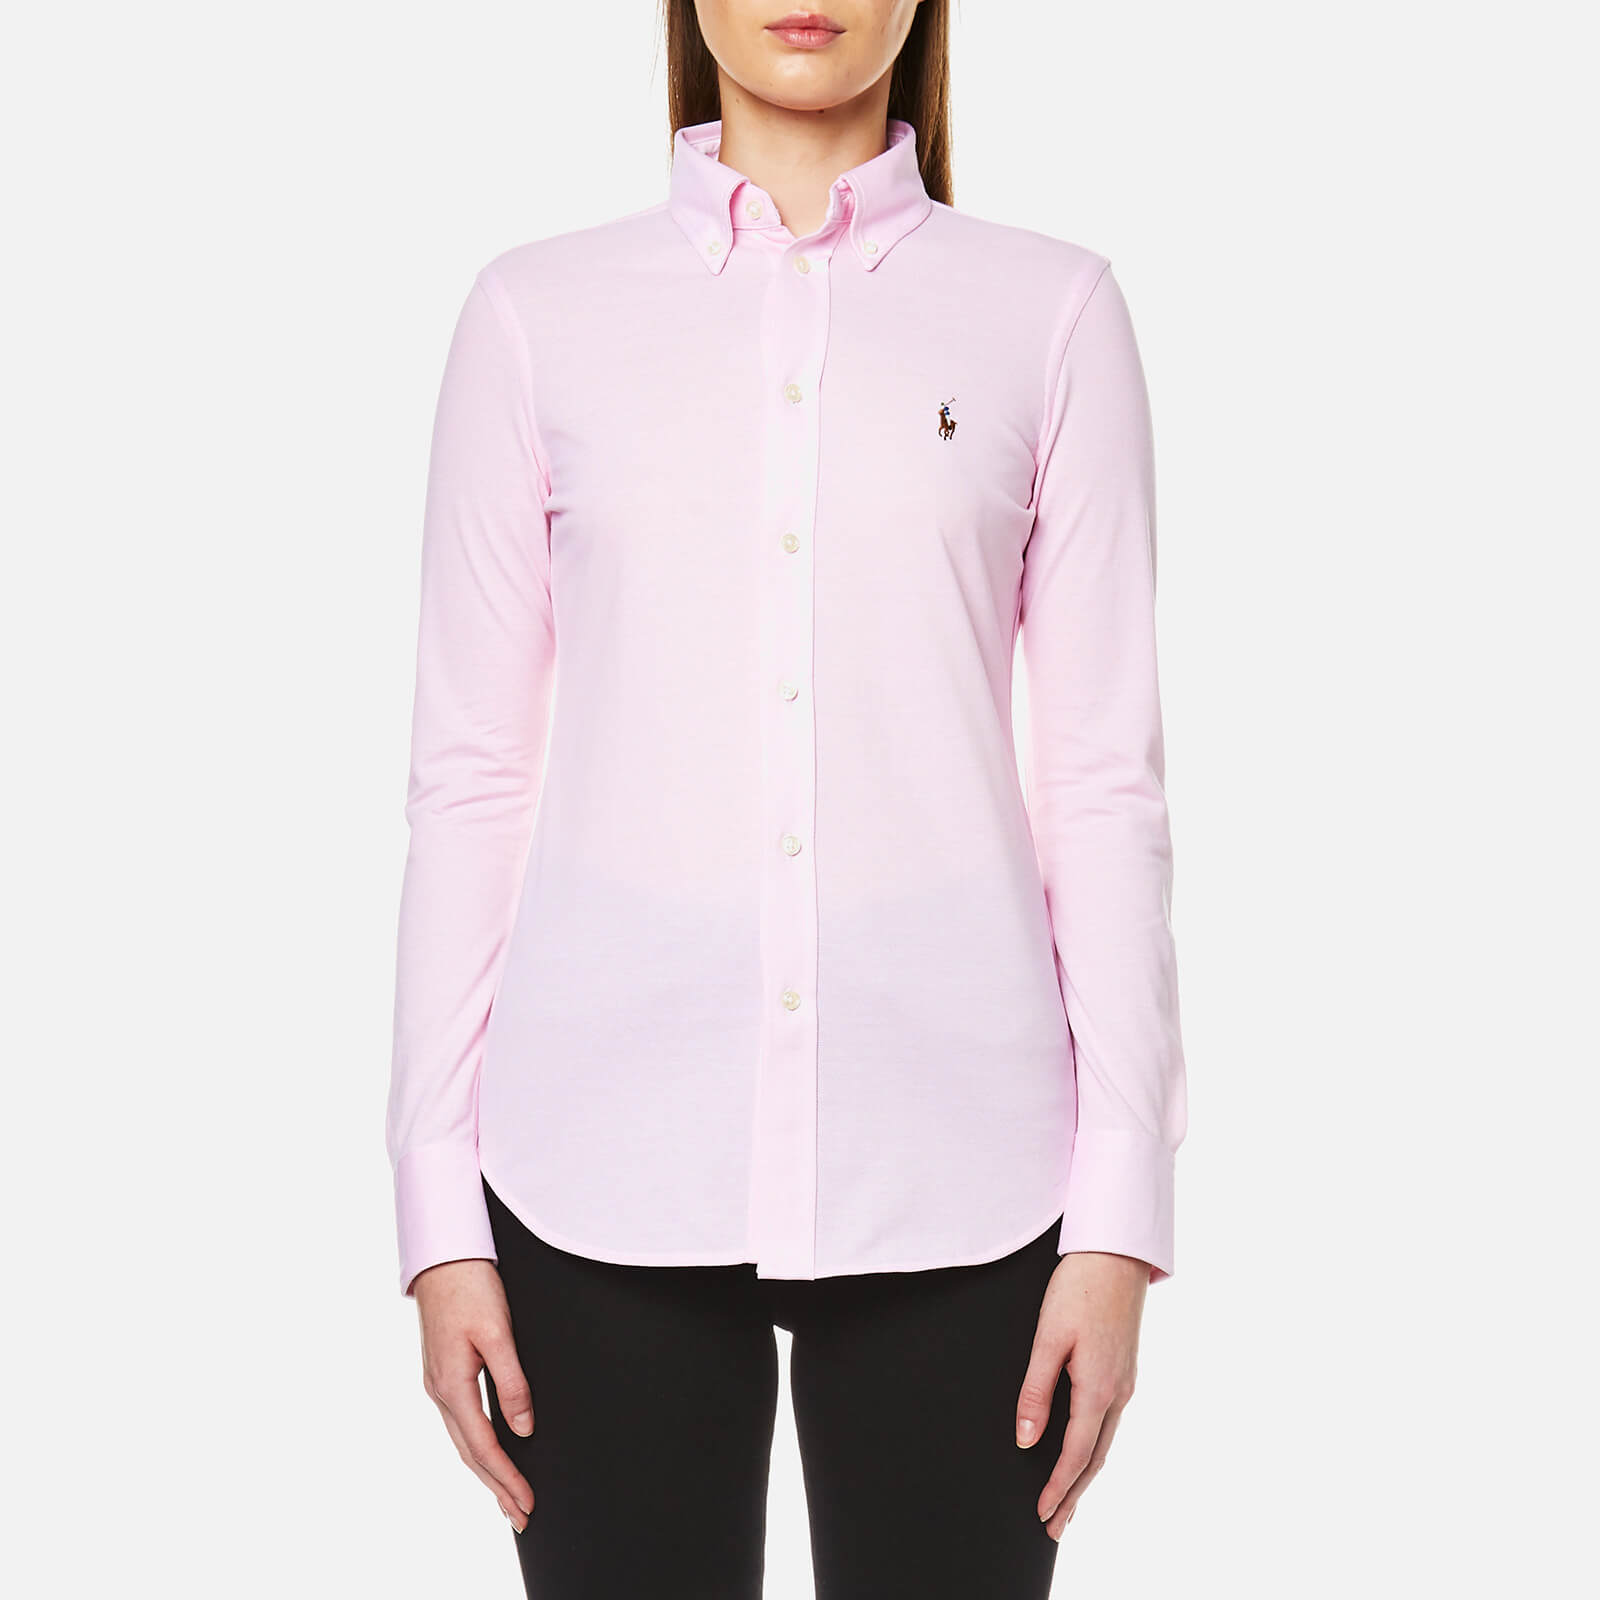 890c3fad41fad Polo Ralph Lauren Women s Heidi Skinny Fit Stretch Shirt - Carmel Pink - Free  UK Delivery over £50